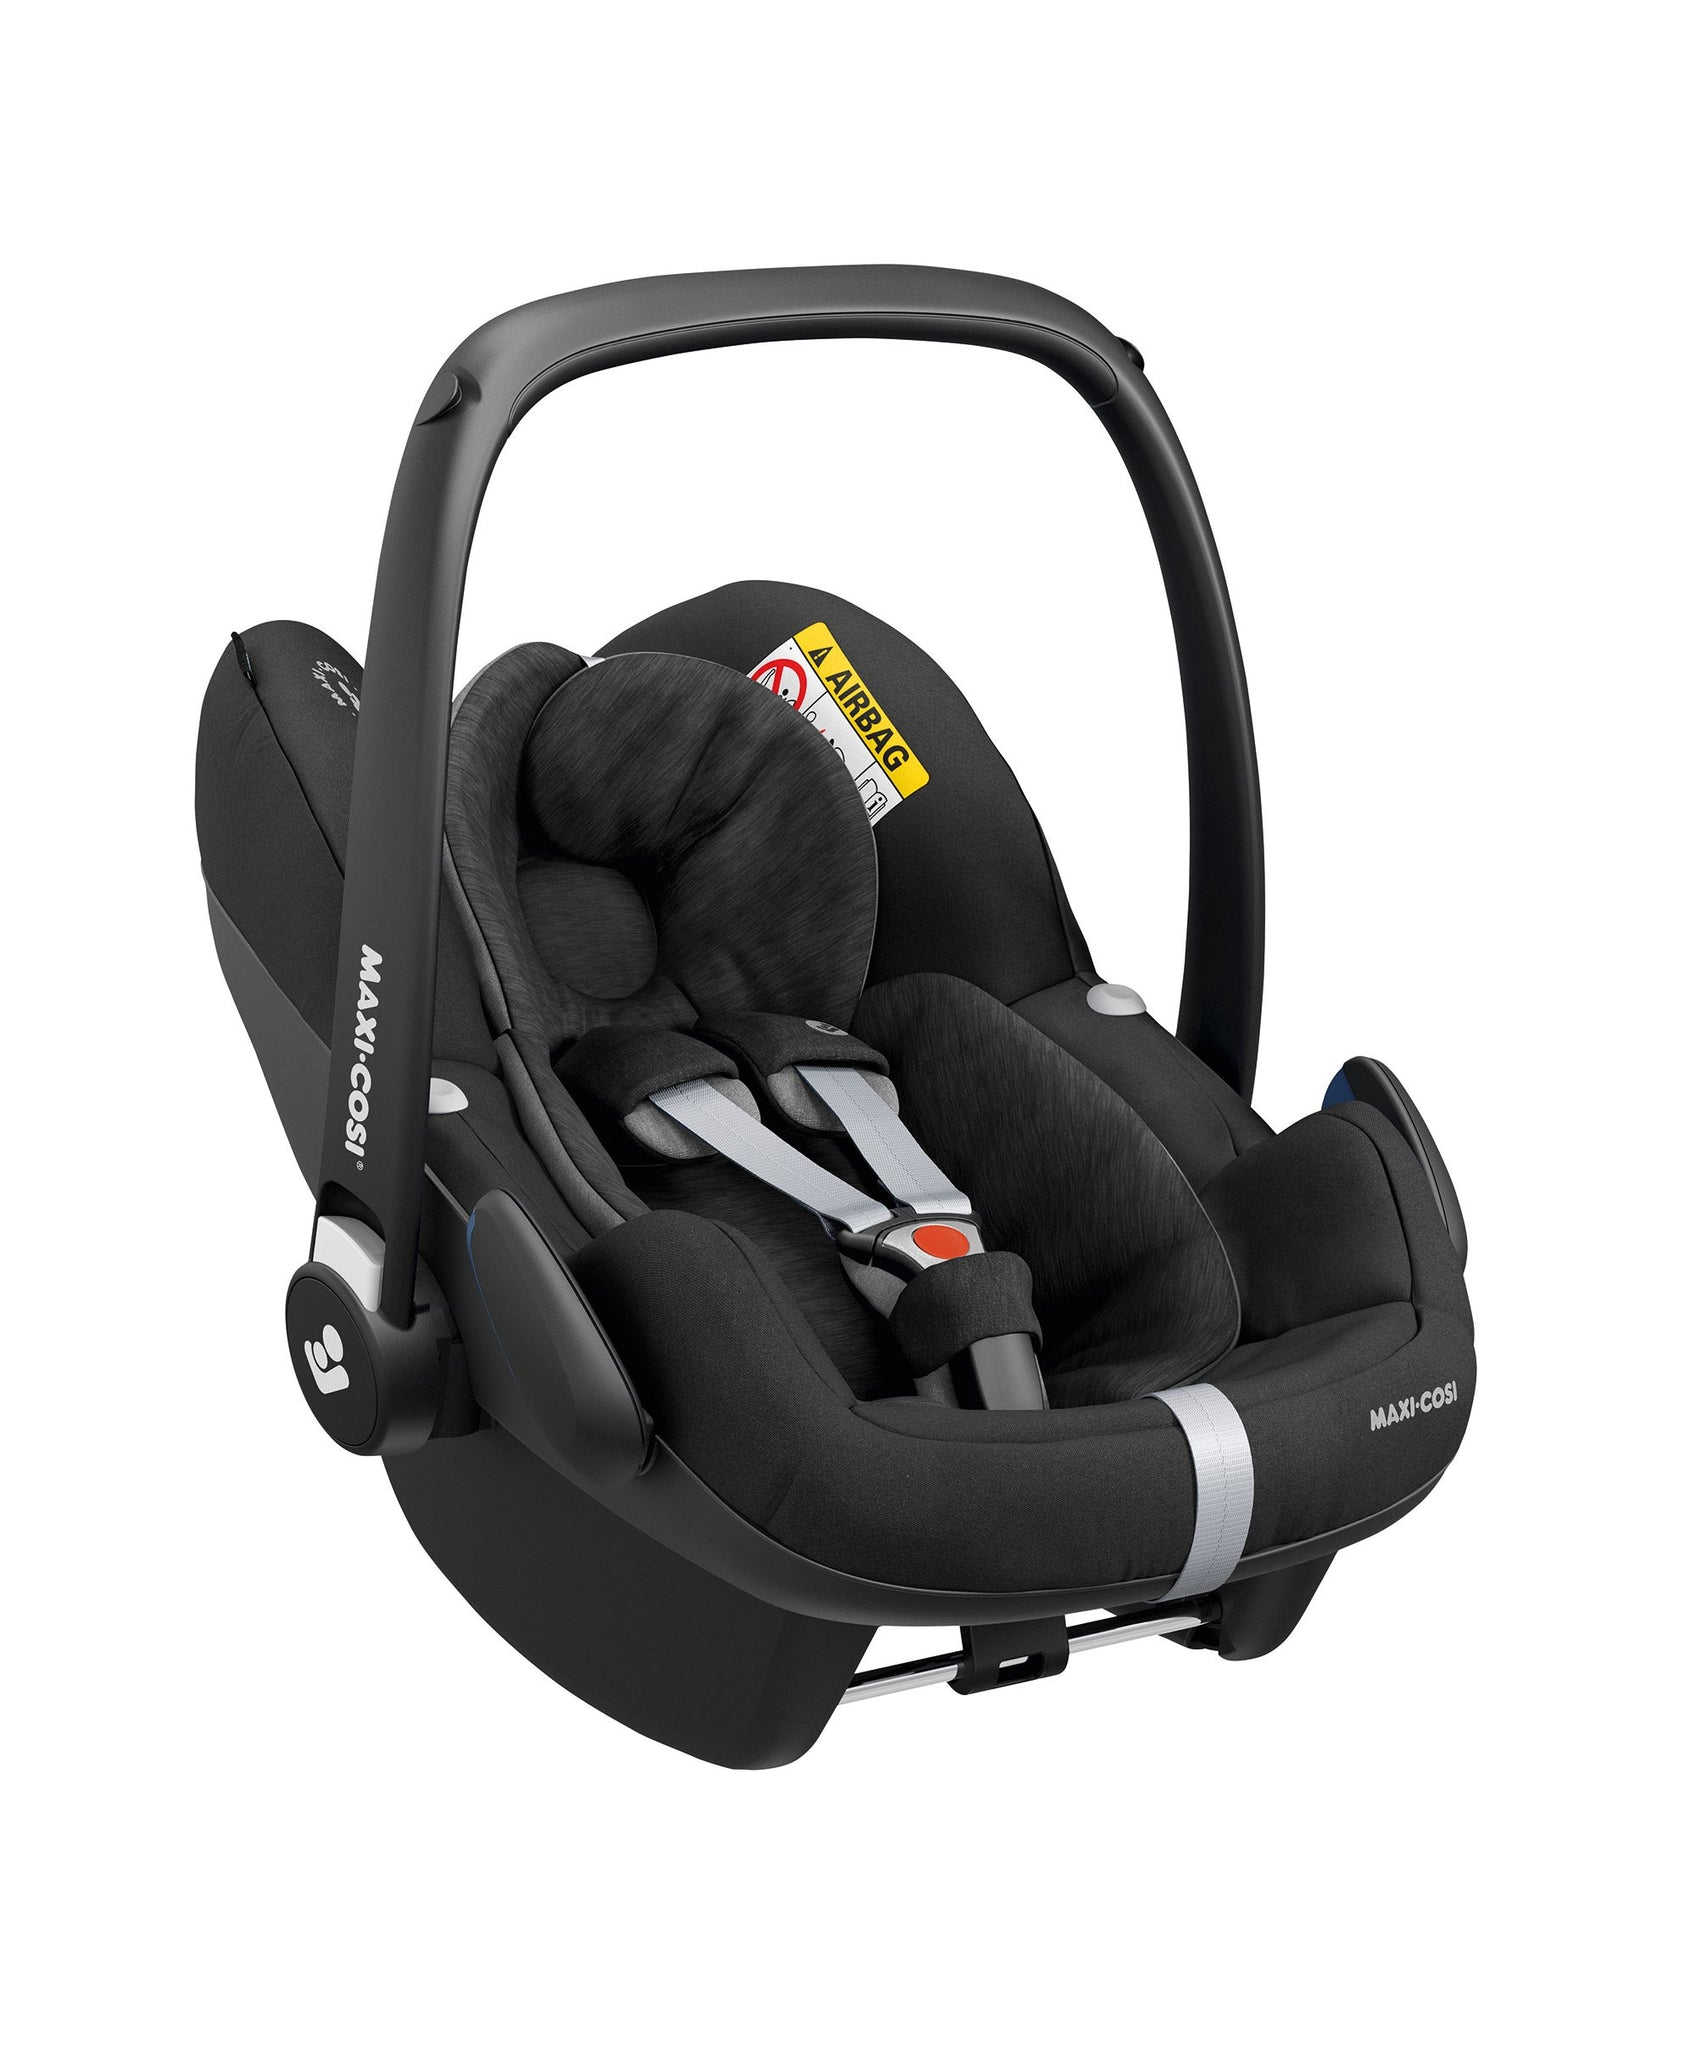 Maxi Cosi Pebble Pro Baby Car Seat in Essential Black